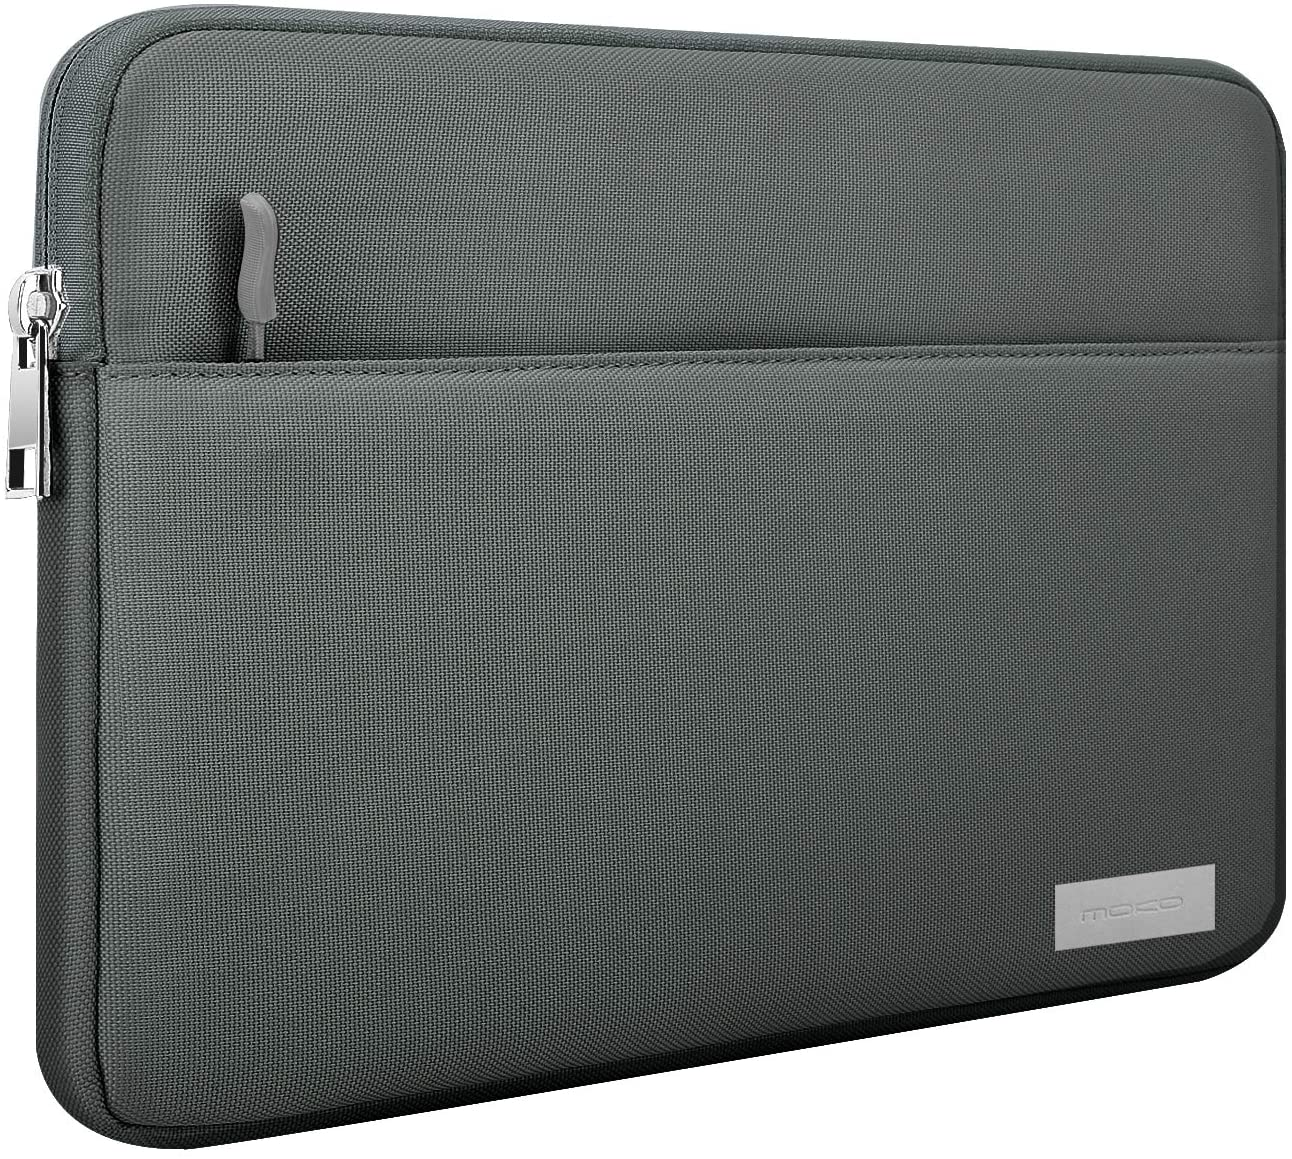 "MoKo Laptop Sleeve Case Fits 12.3 Inch Surface Pro 7/6/5/4/3, Surface Pro LTE 12.3"", Surface Pro X, MacBook Air 11.6"" Zipper Polyester Bag with Pocket, Fit Surface Pro Type Cover and Pen - Dark Gray"